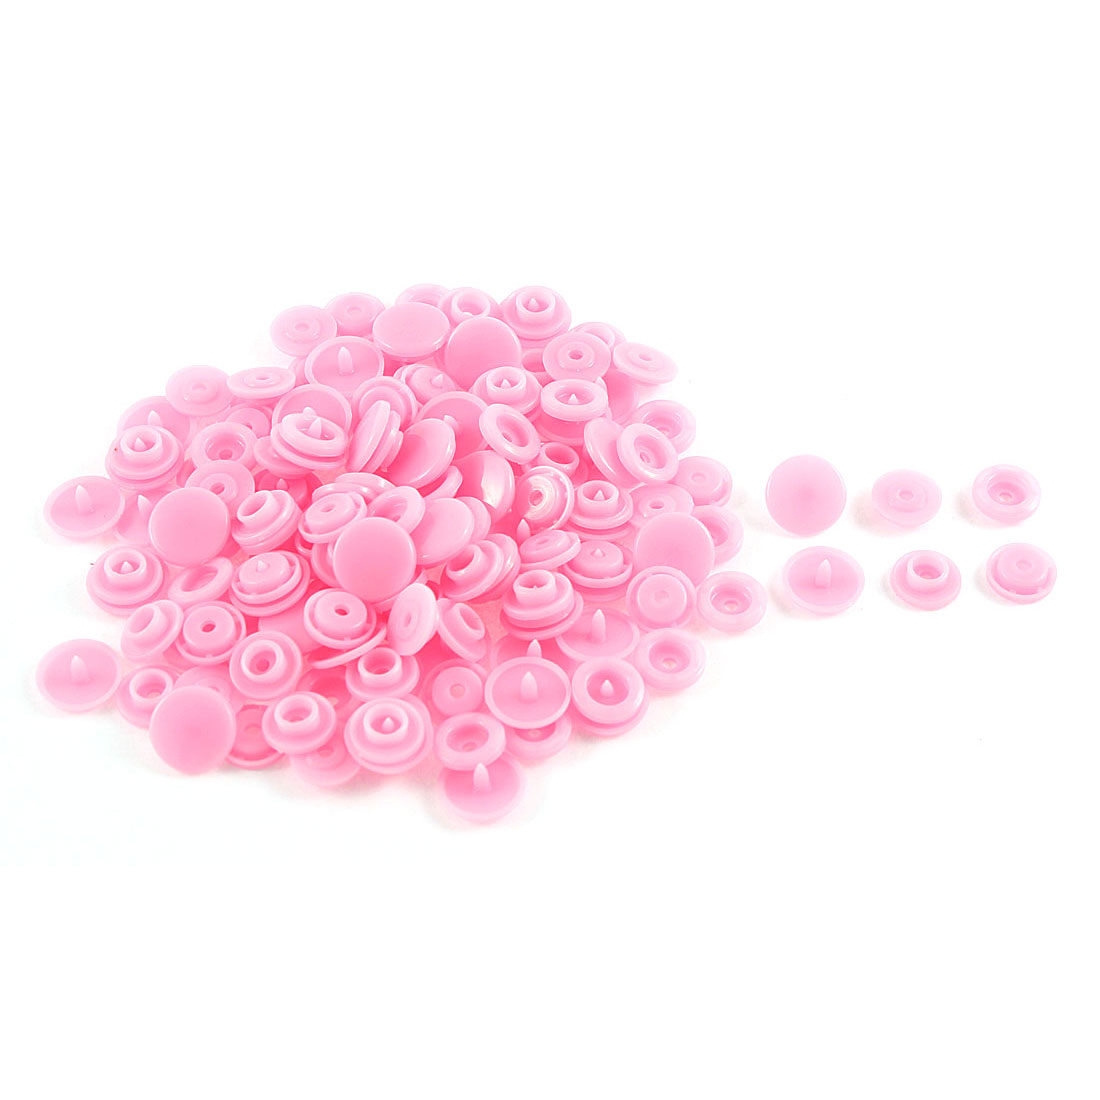 50 Pcs DIY Sewing Dress Press Fastener Buttons Popper Stud Pink